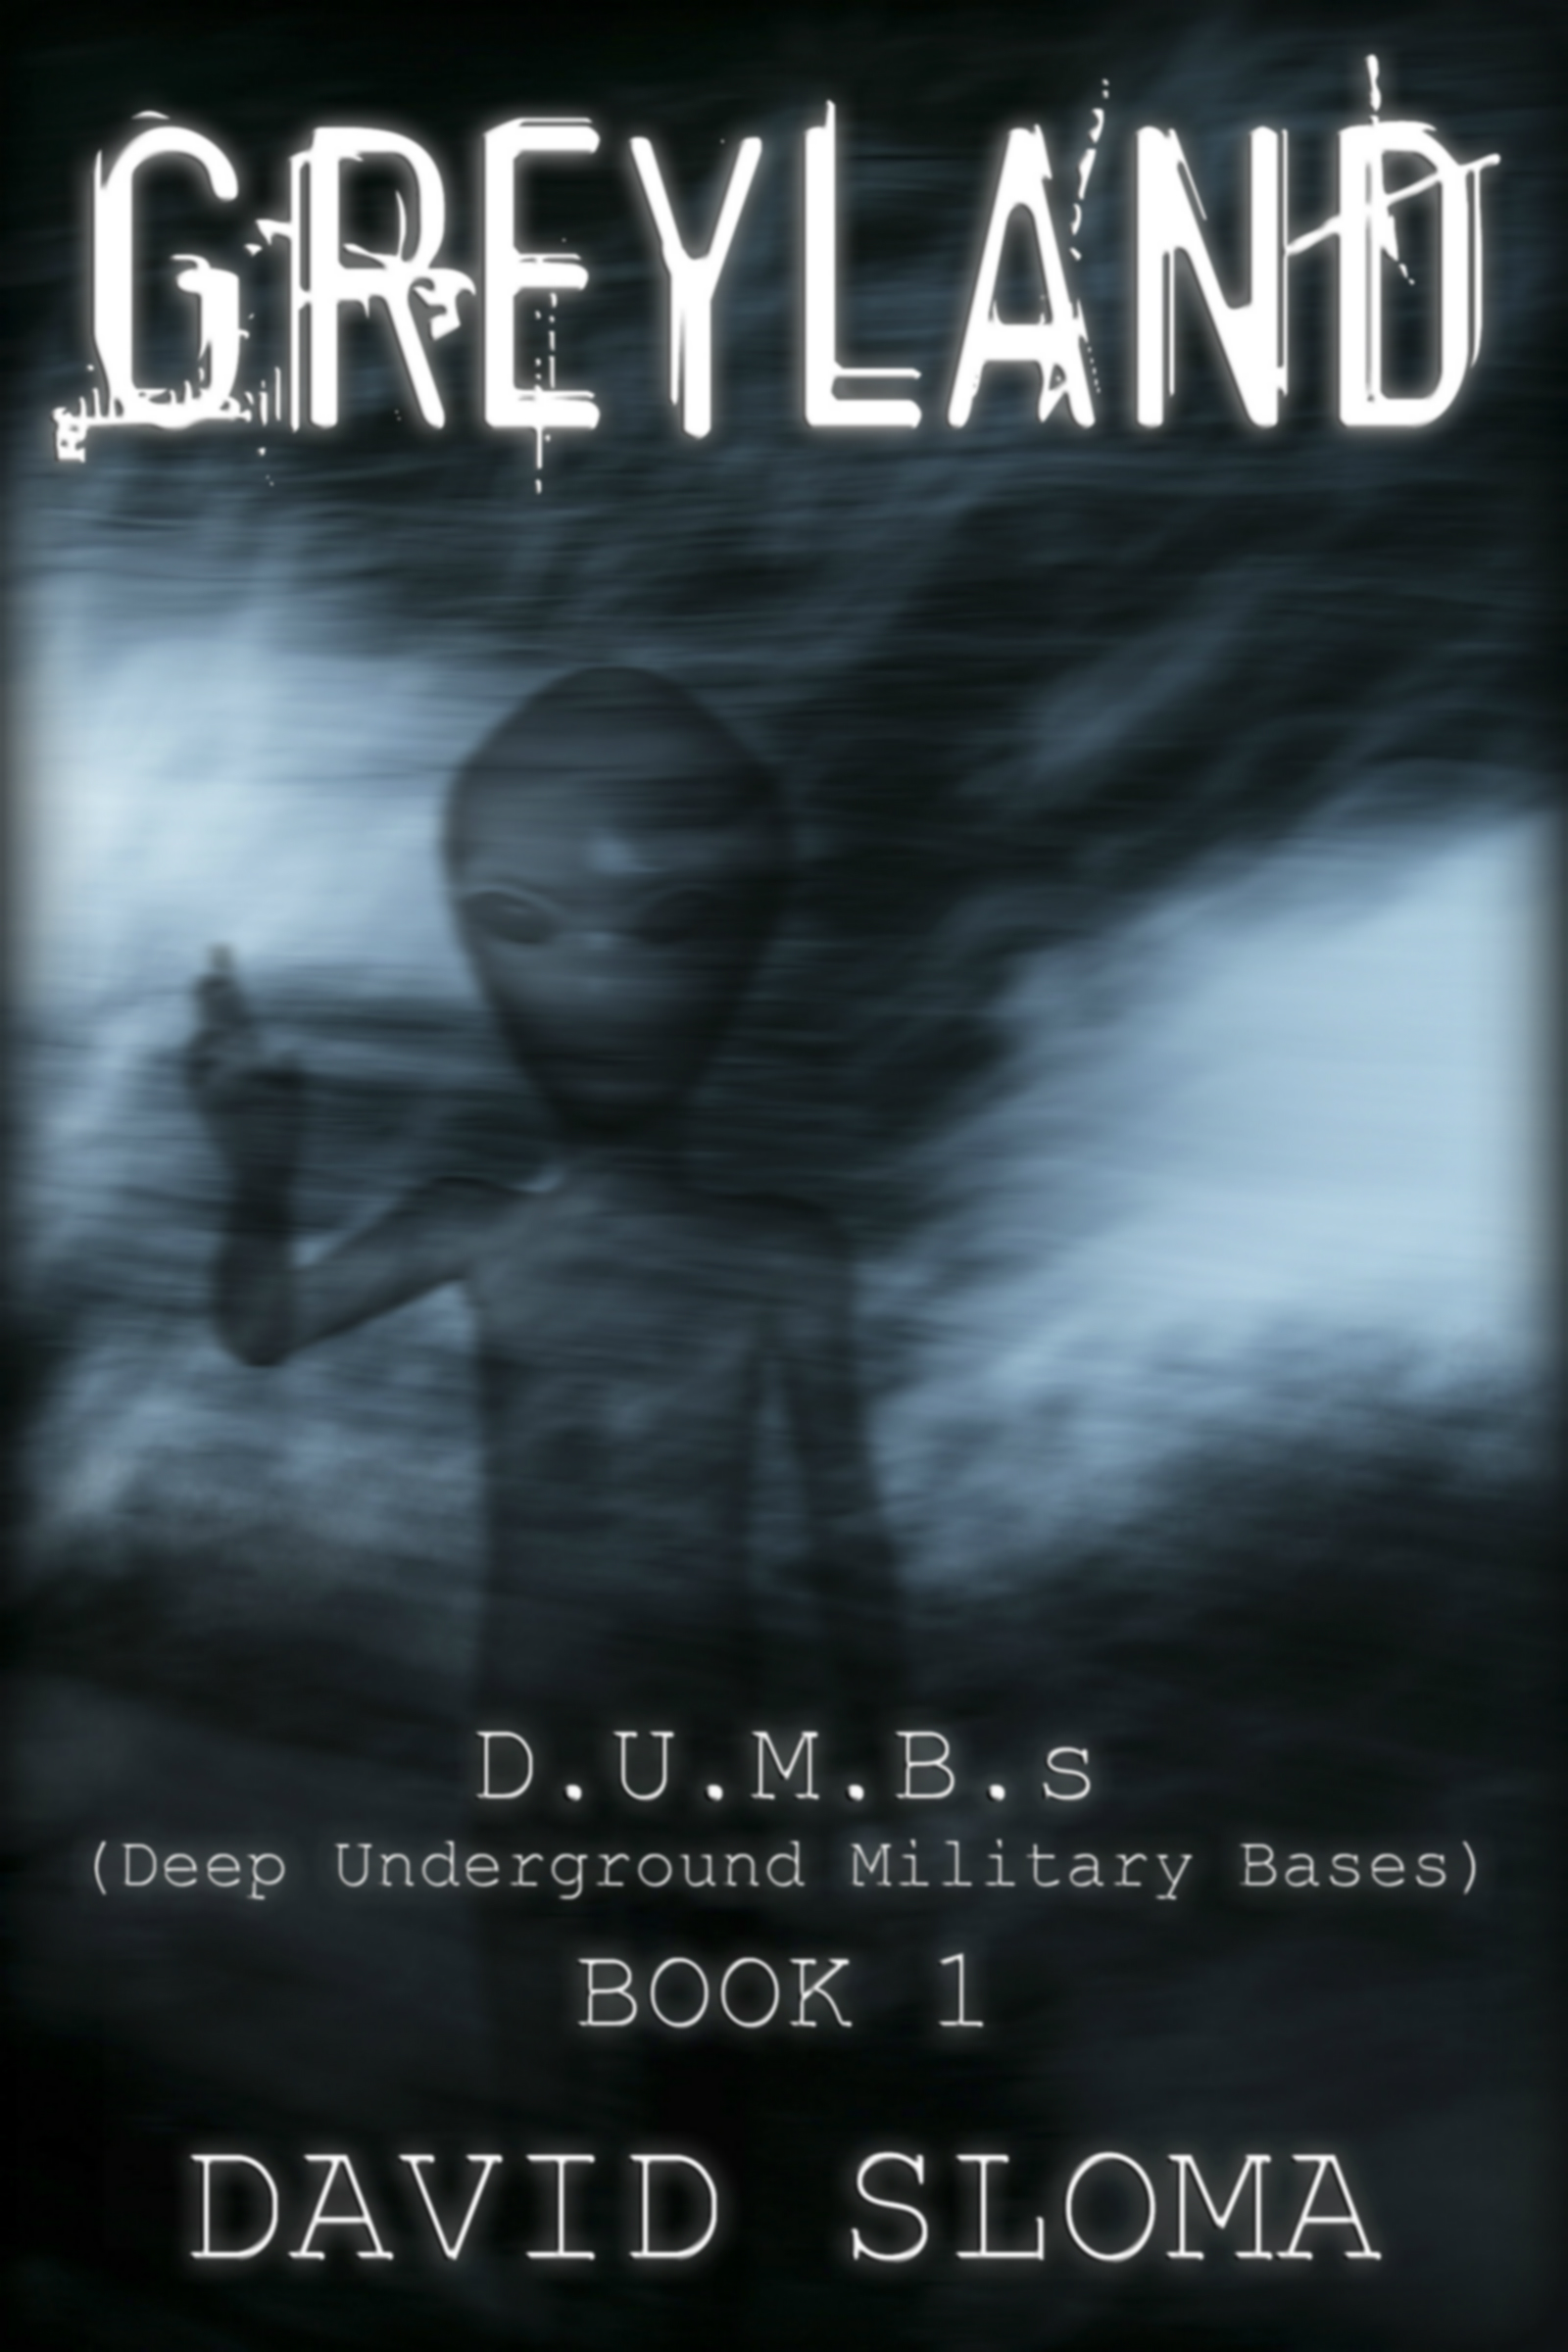 Greyland: D.U.M.B.s (Deep Underground Military Bases) – Book 1 on Amazon Kindle today